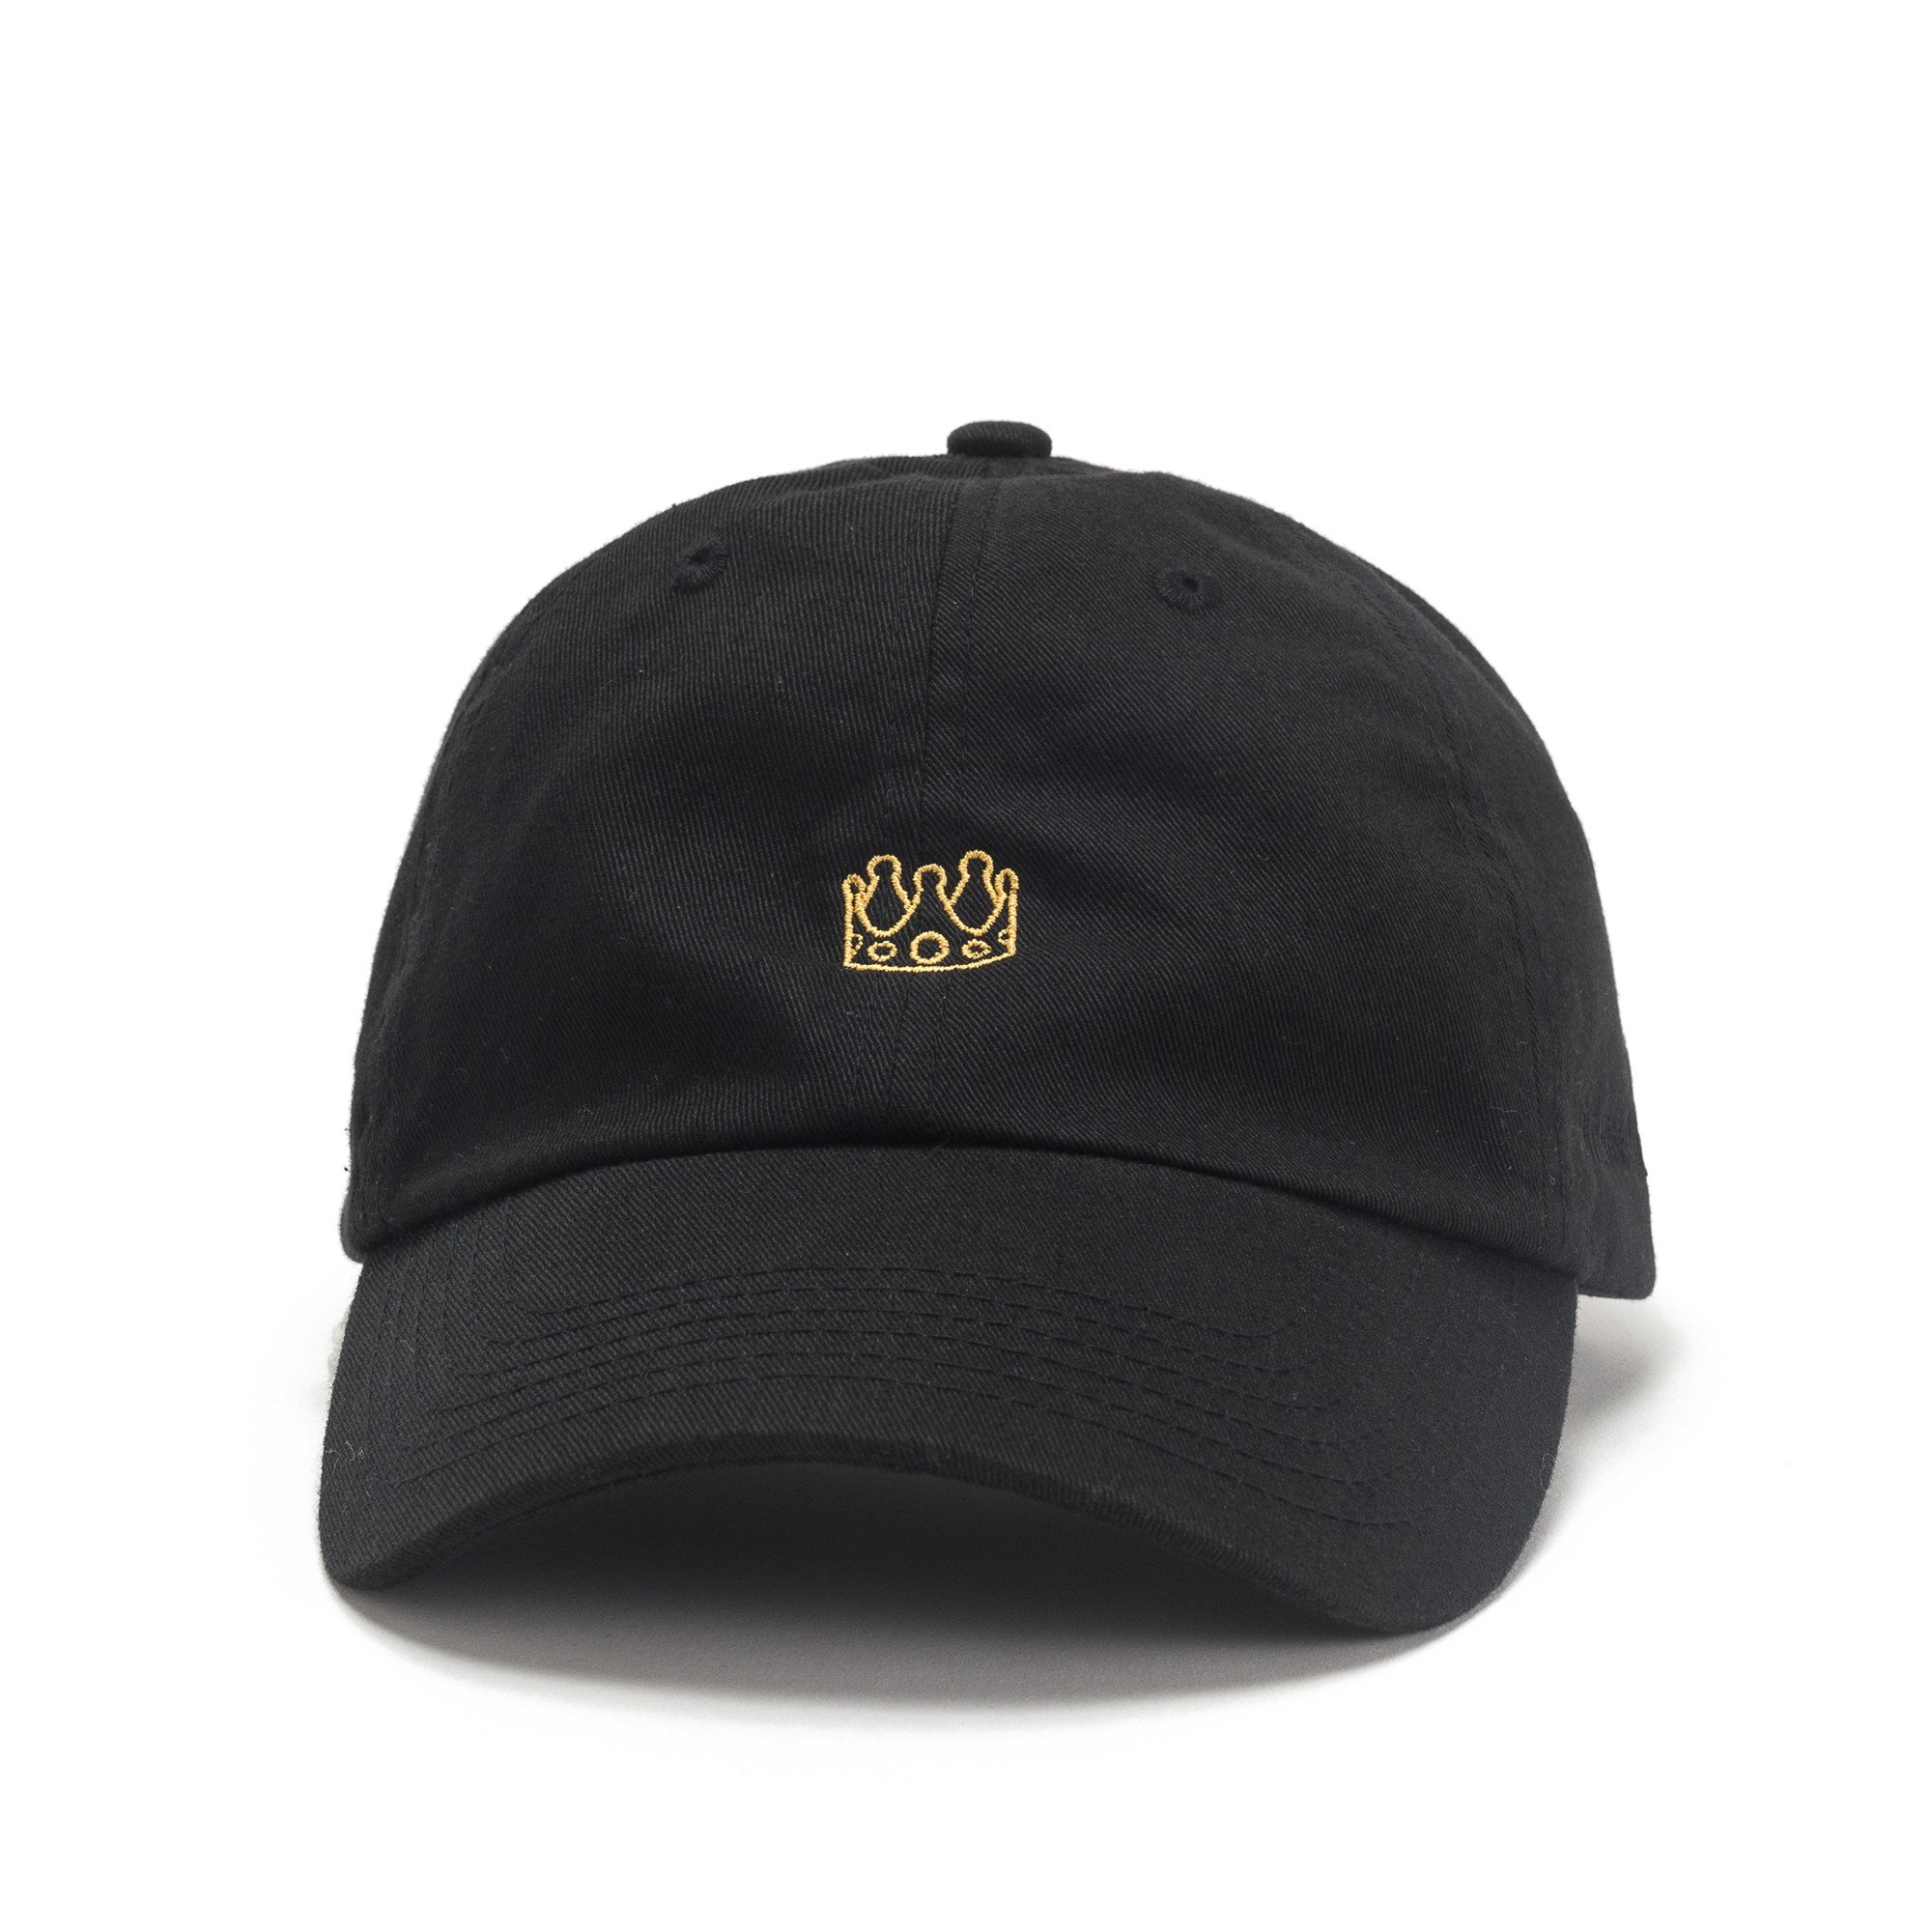 Fitness Queen Dad Hat - Black